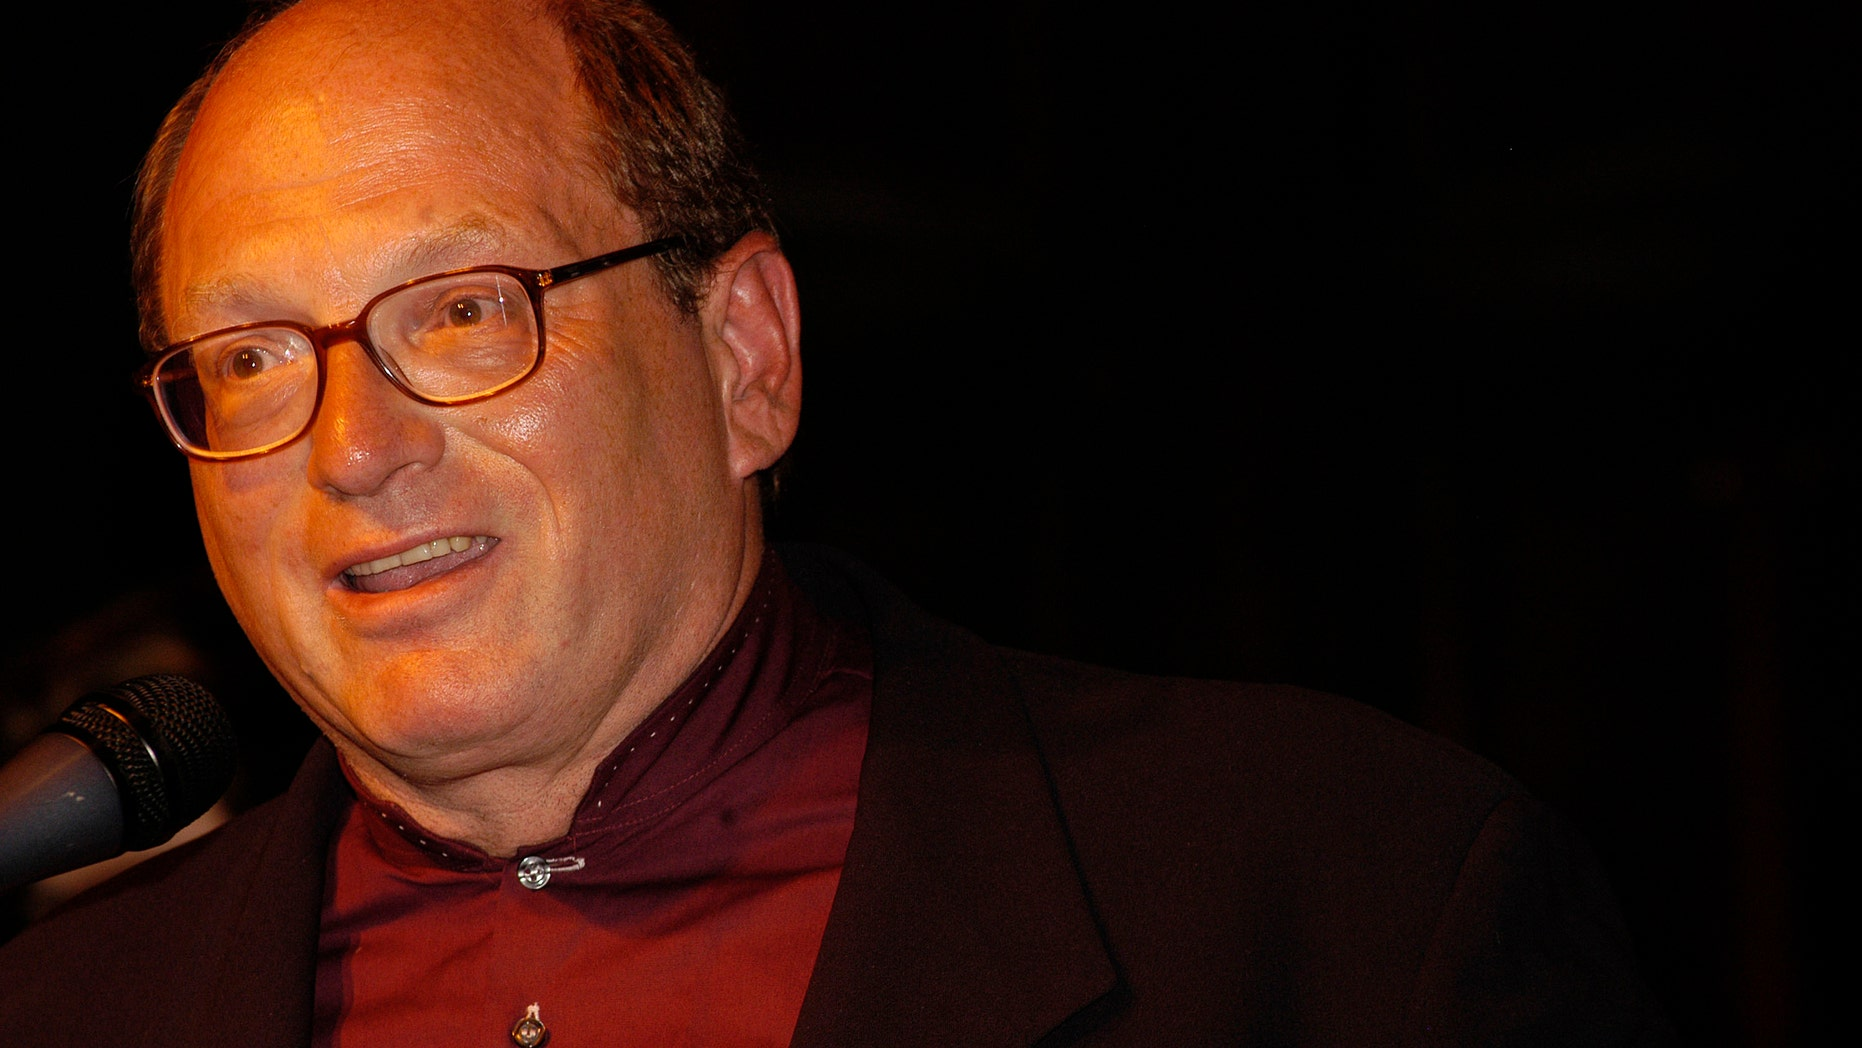 NEW YORK - SEPTEMBER 22:  Pulitzer Prize-winning author Oscar Hijuelos attends the 4th annual HOLA (Hispanic Organization of Latin Actors) Awards at the Gramery Arts Center September 22, 2003 in New York City. HOLA's stated mission is to expand the presence of Hispanic actors in both Latino and mainstream arts and media.  (Photo by Myrna Suarez/Getty Images)